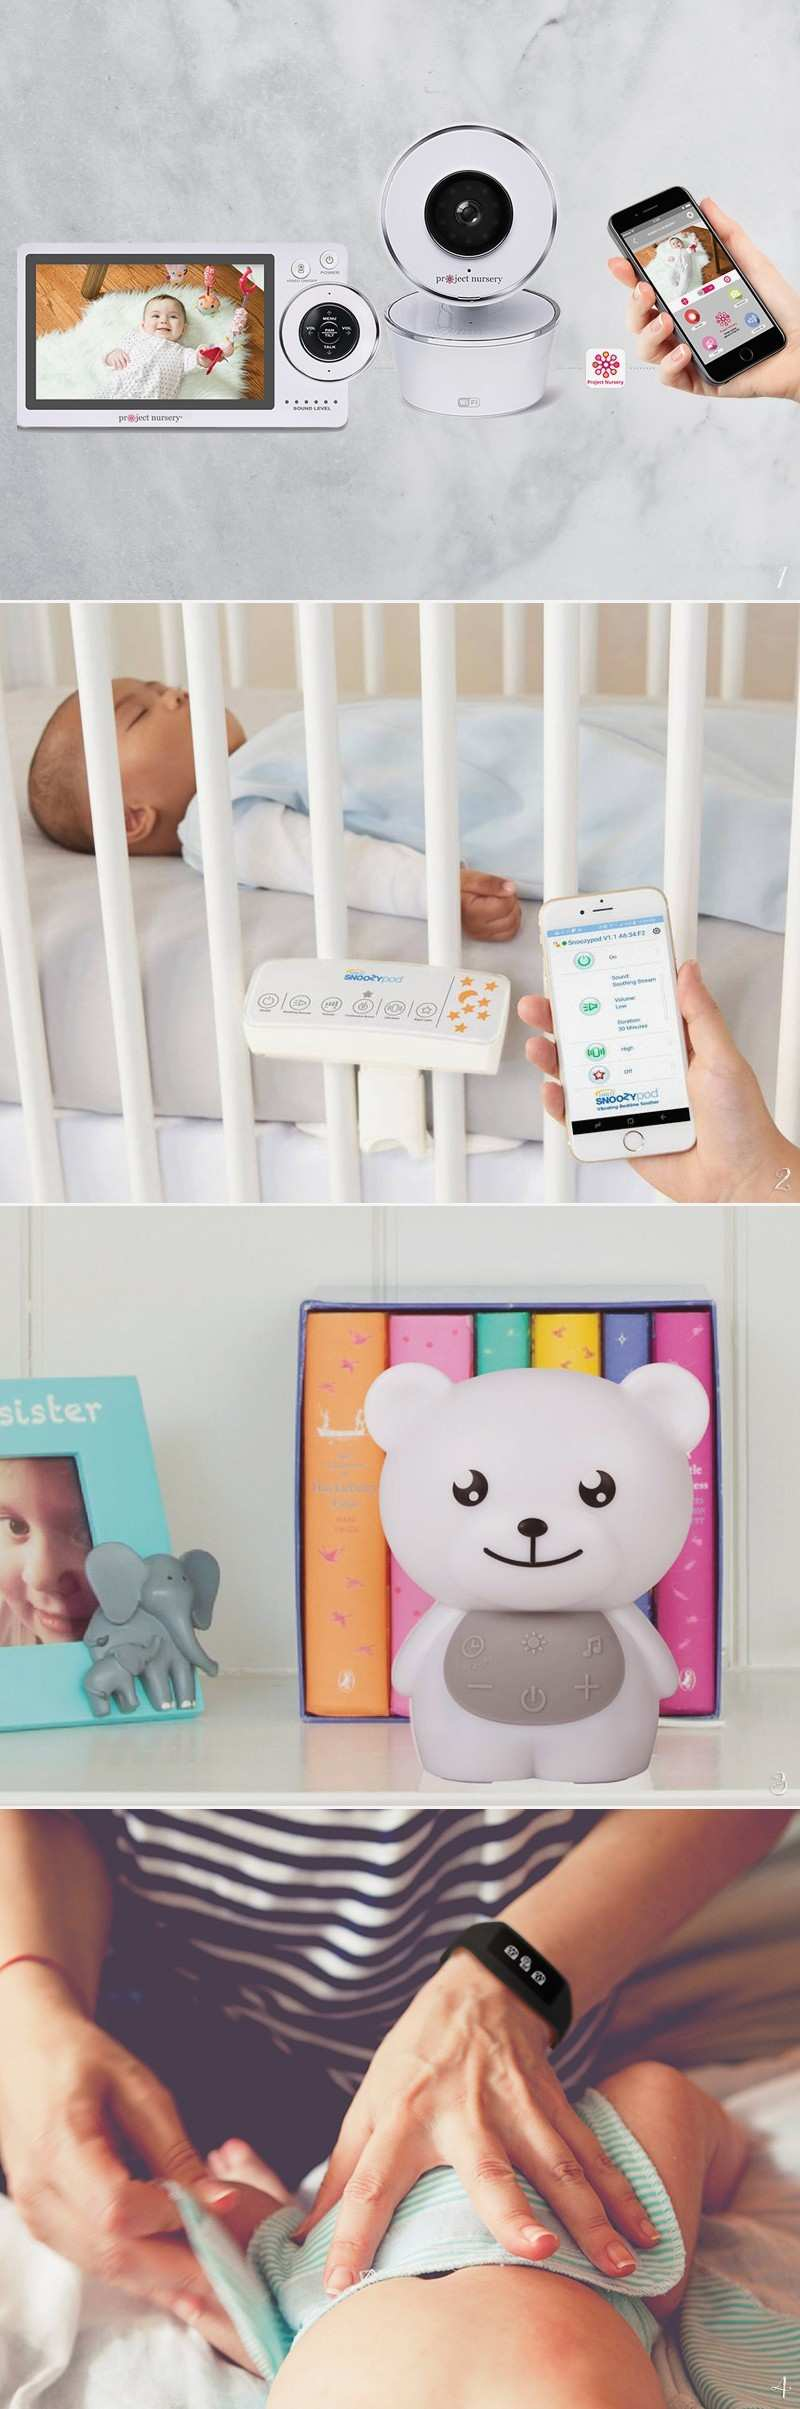 Room Awesome Baby Room Temperature Monitor Cool Home Design